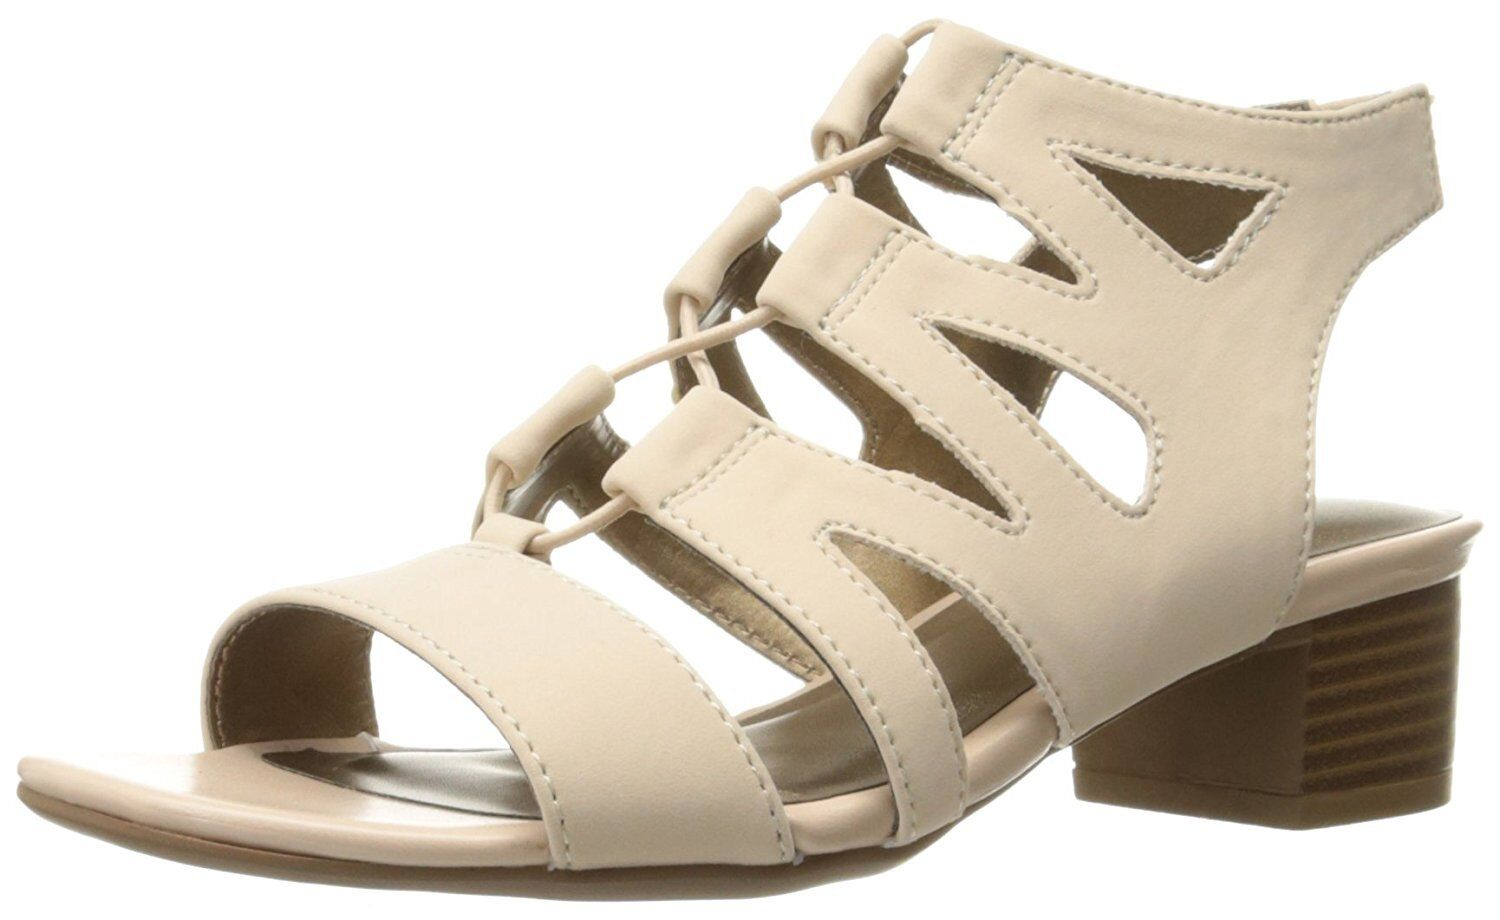 LifeStride size Womens Meaning Gladiator Sandal size LifeStride 6.5 8 10 NEW 1e22a8